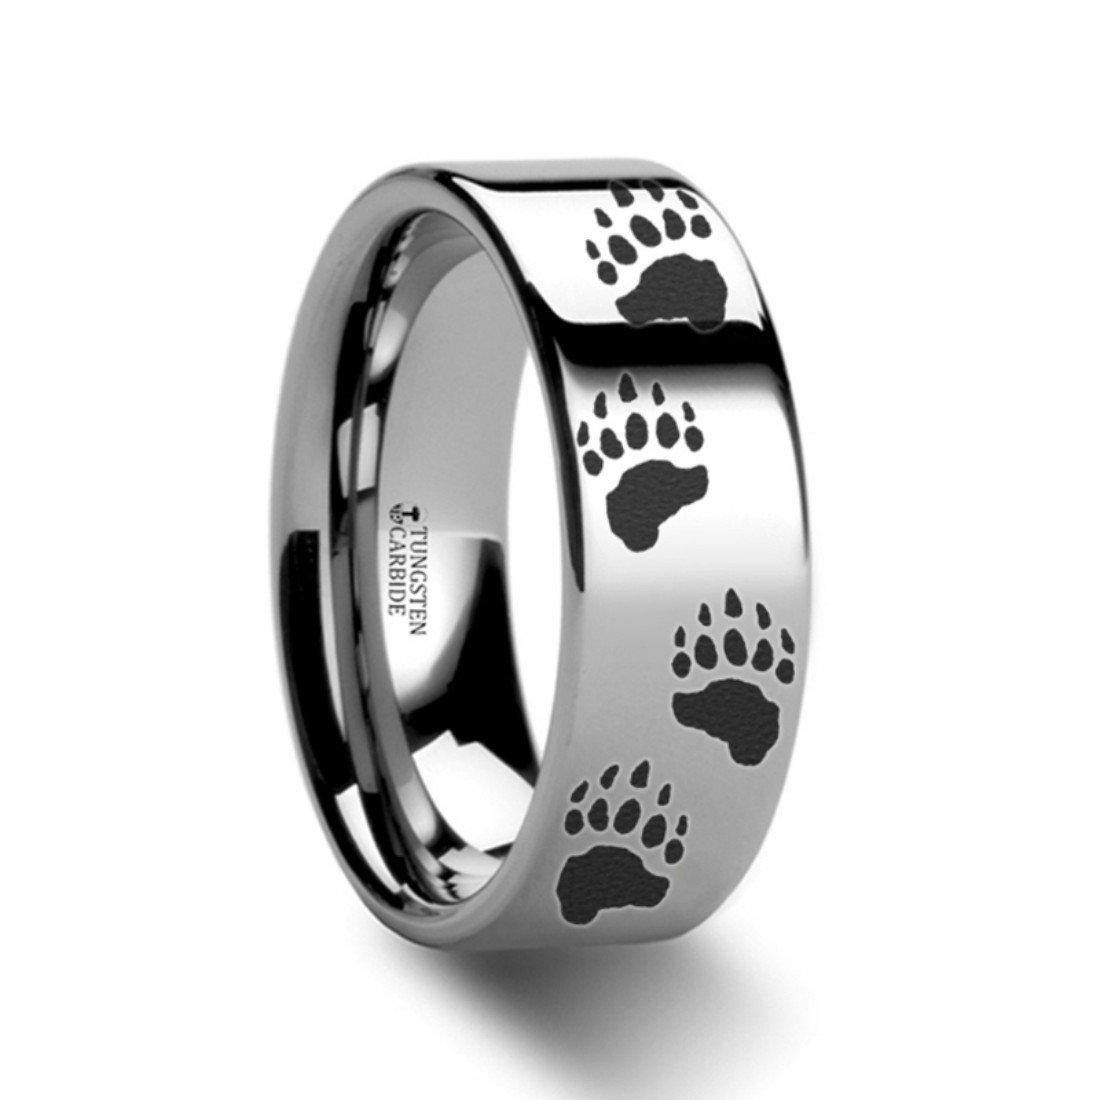 Thorsten Bear PAW Animal Track Bear Paw Print Ring Tungsten Ring Polished 6mm Wide Wedding Band from Roy Rose Jewelry